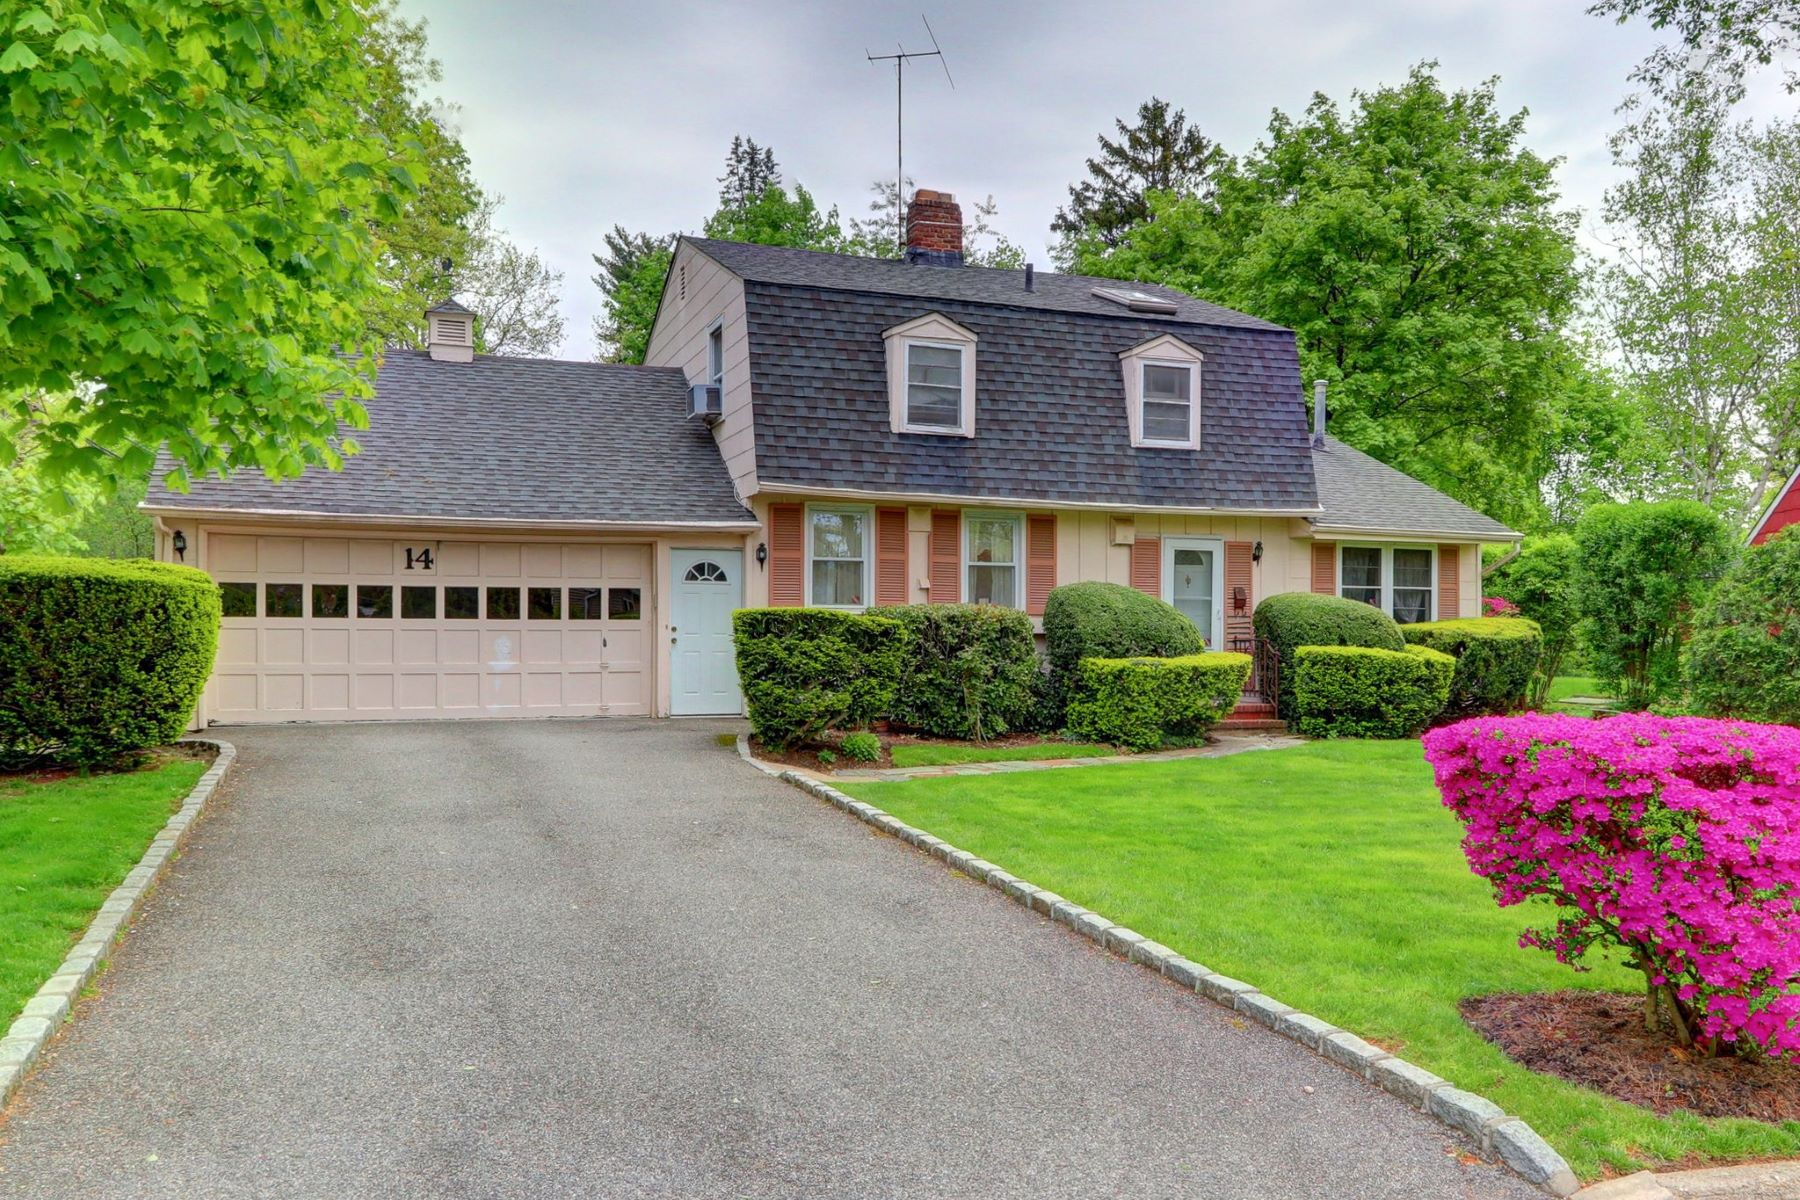 Single Family Homes for Active at Roslyn Heights 14 Pinetree Ln Roslyn Heights, New York 11577 United States